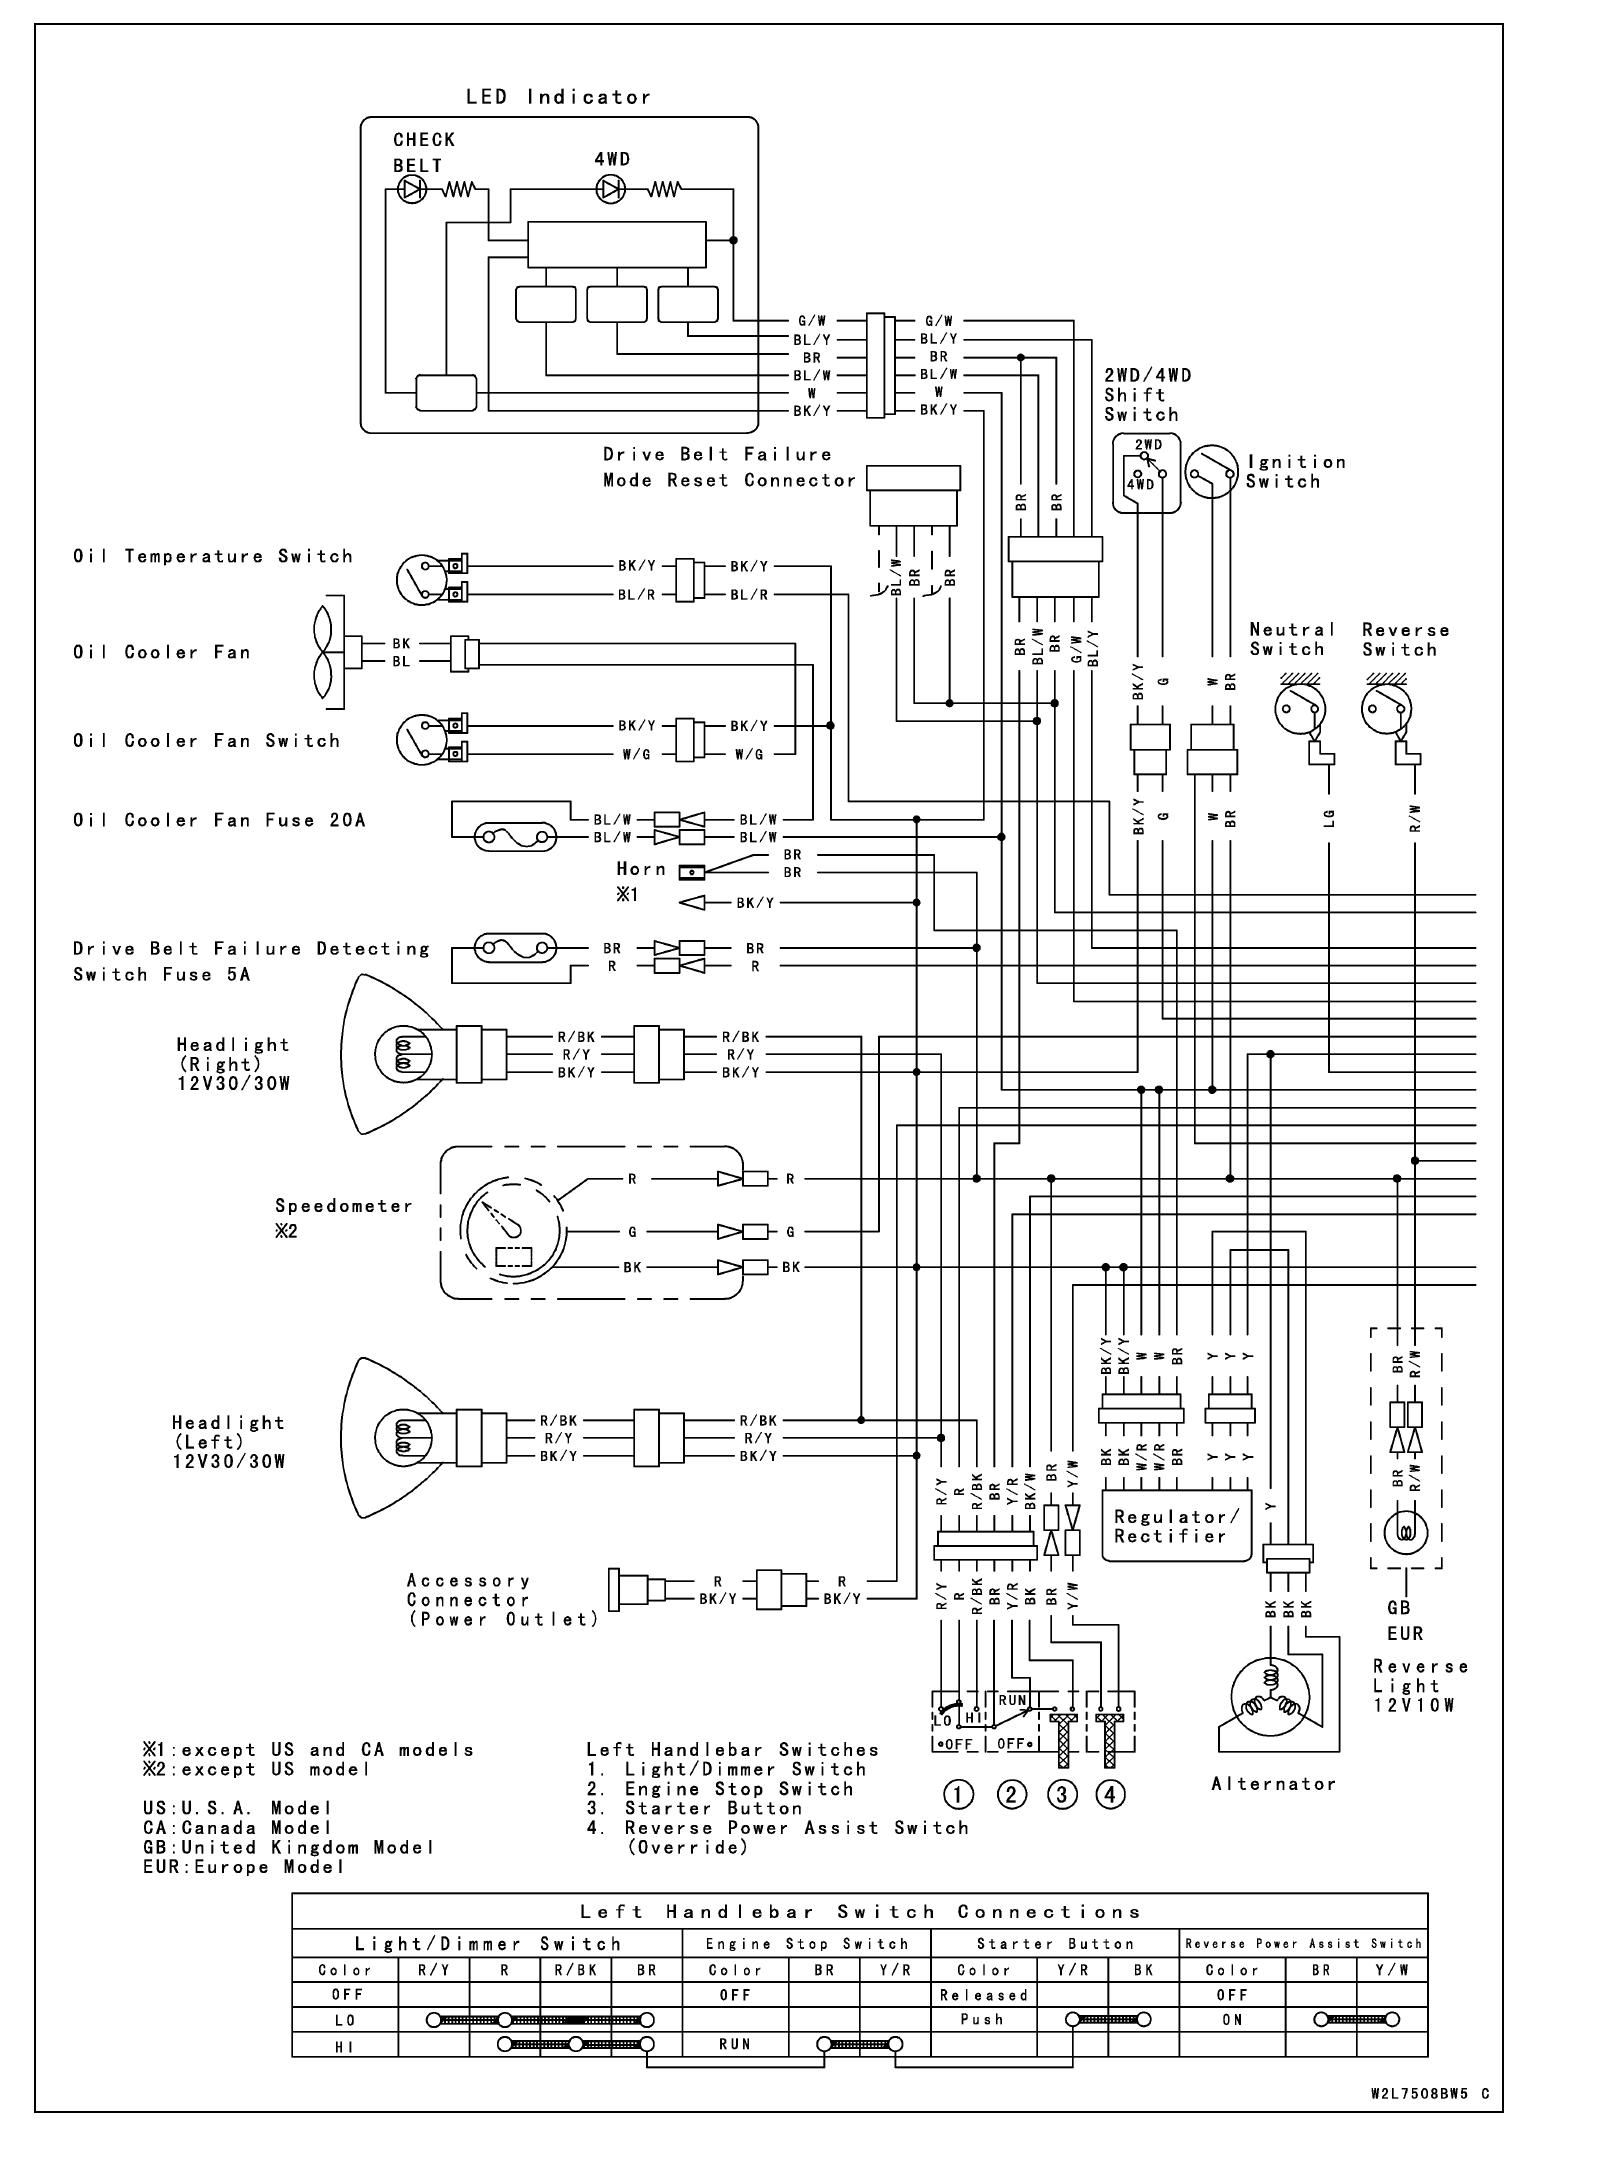 [DIAGRAM] Honda 300 4x4 Wiring Diagram FULL Version HD